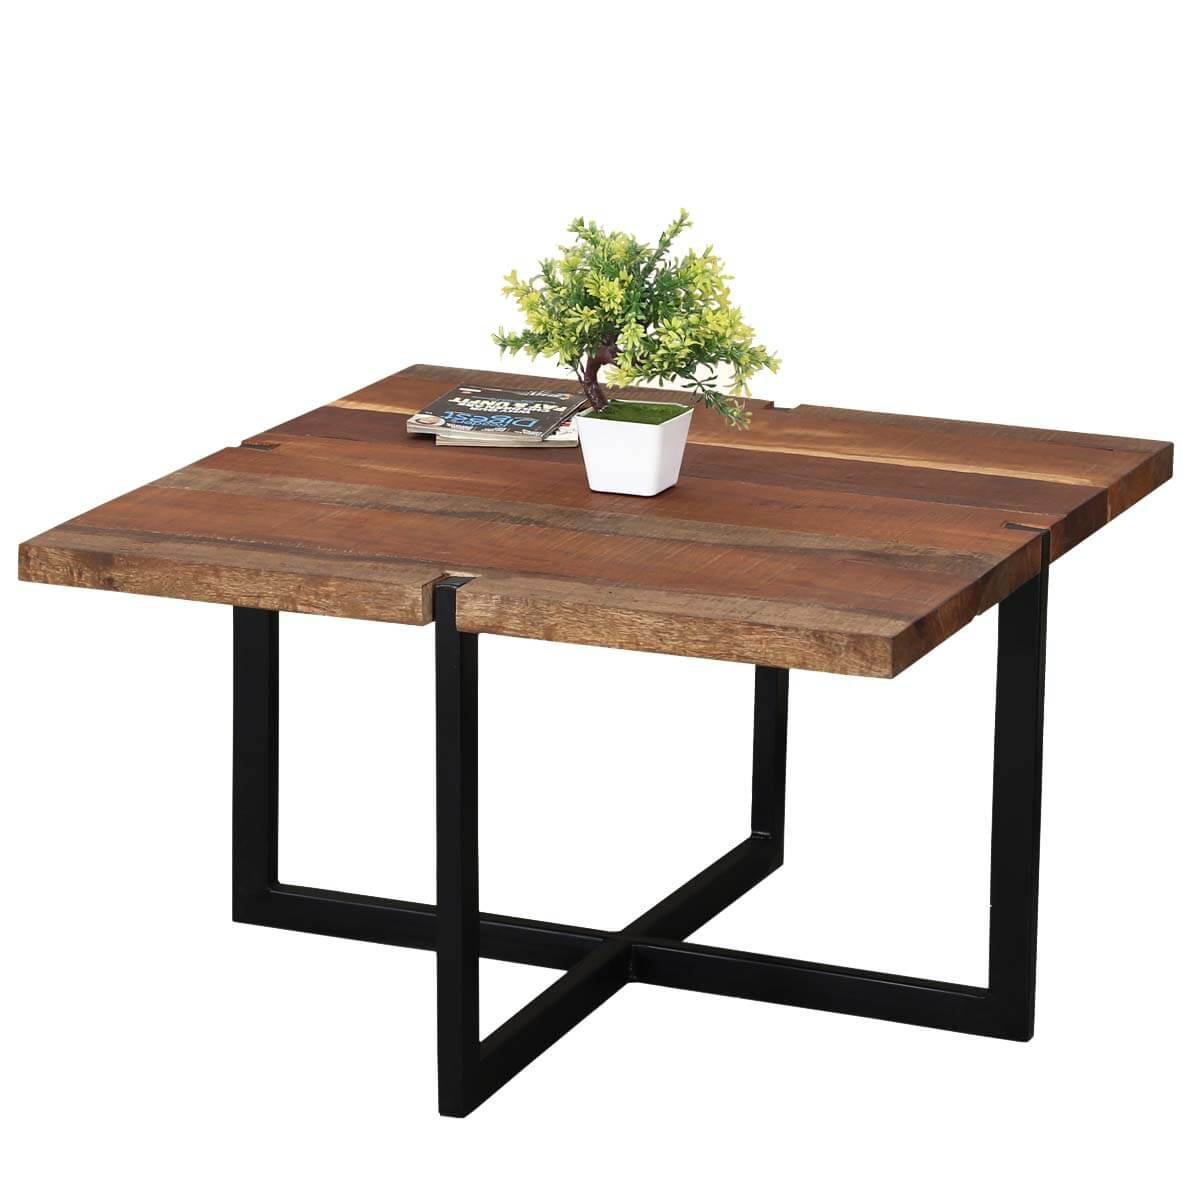 Suffolk Reclaimed Wood & Iron Square Coffee Table